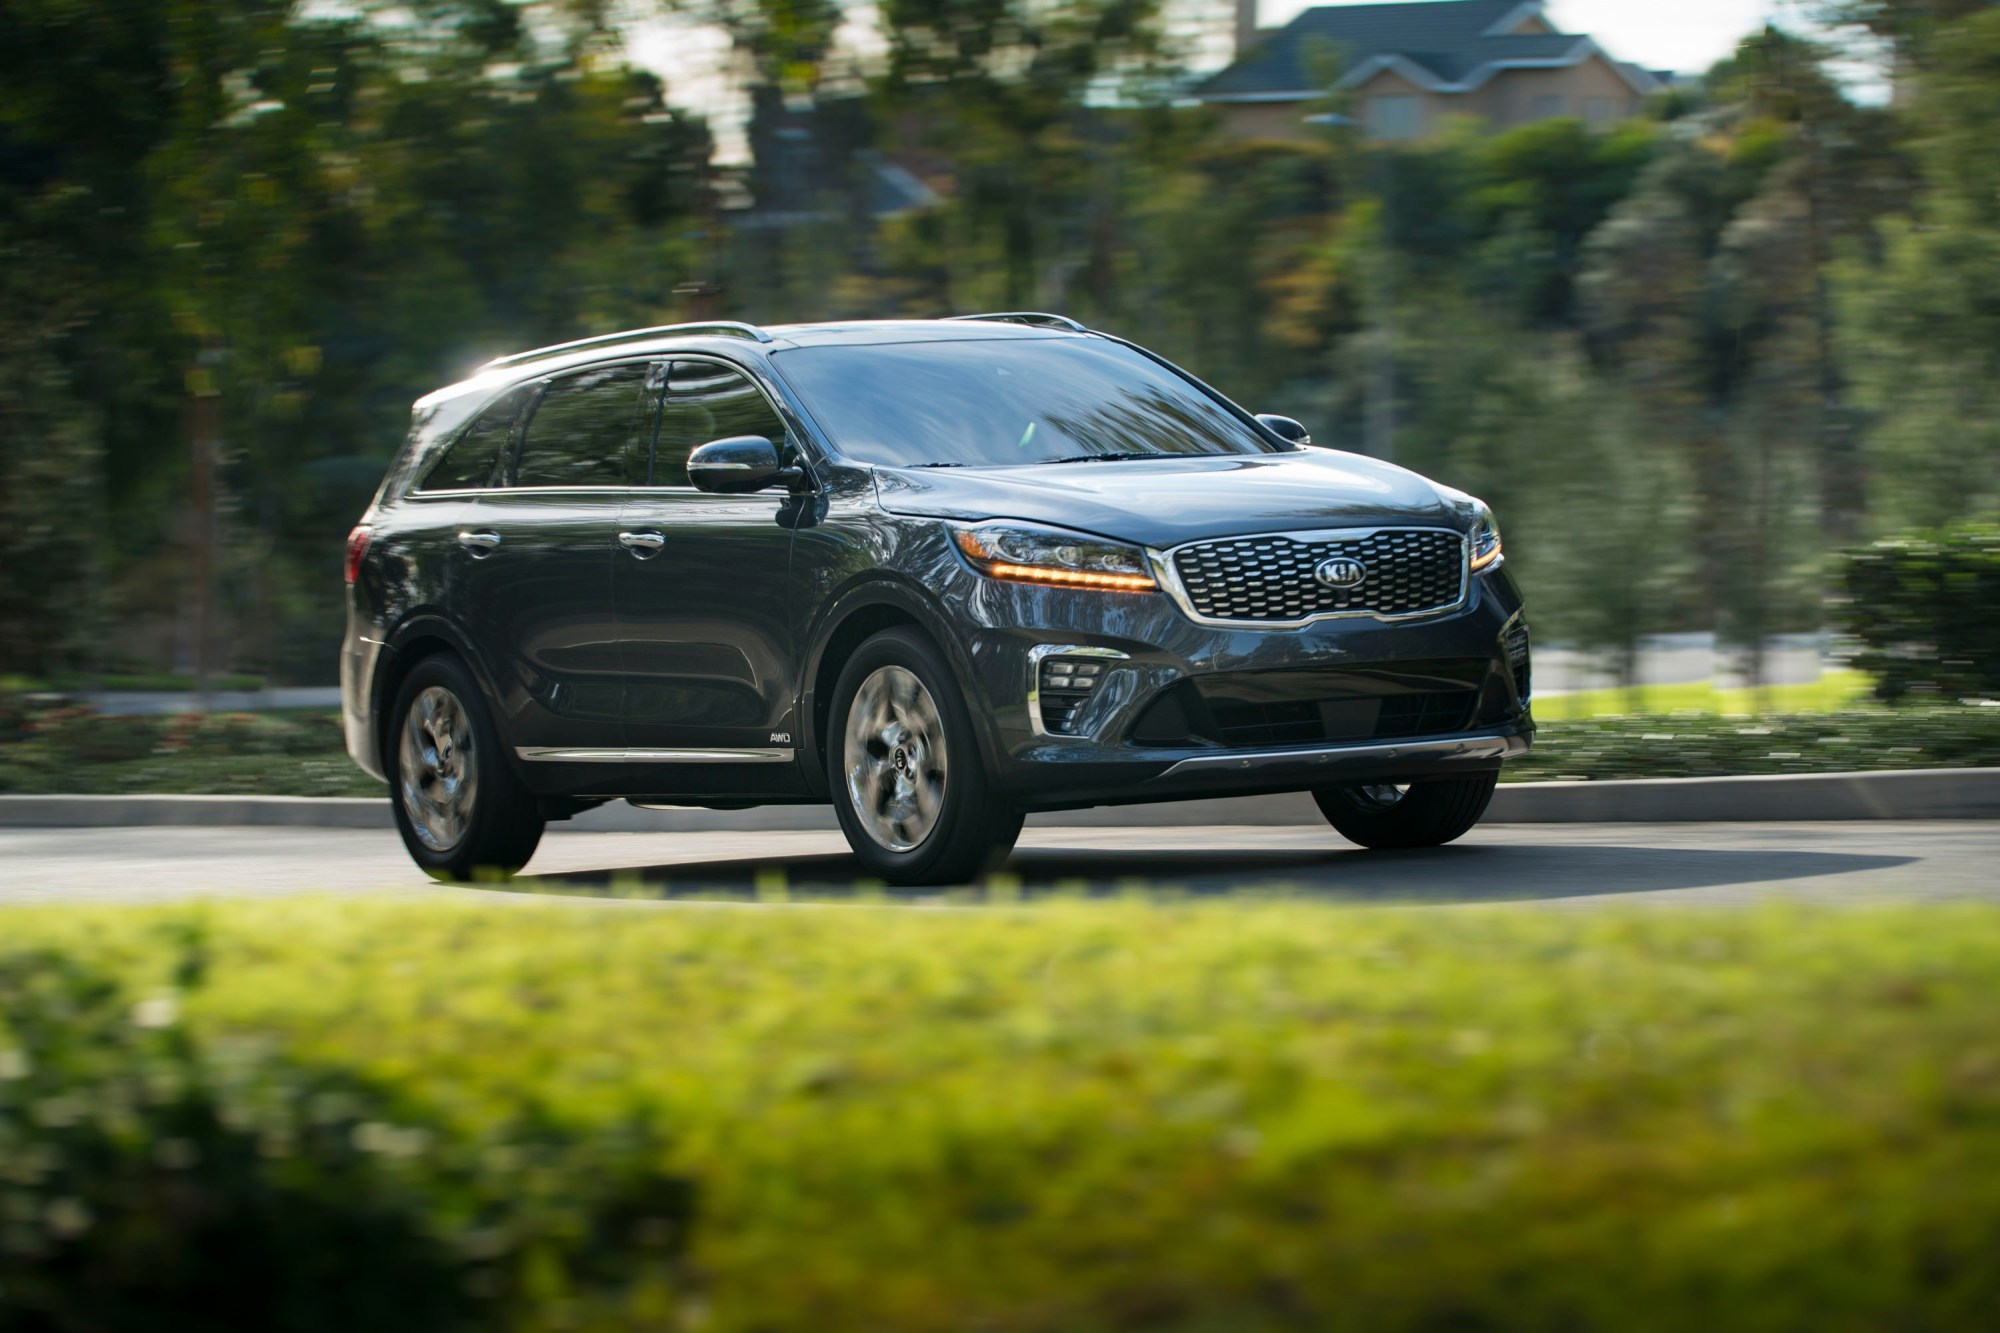 hight resolution of updated kia sorento unveiled in l a with new features diesel engine confirmed top speed